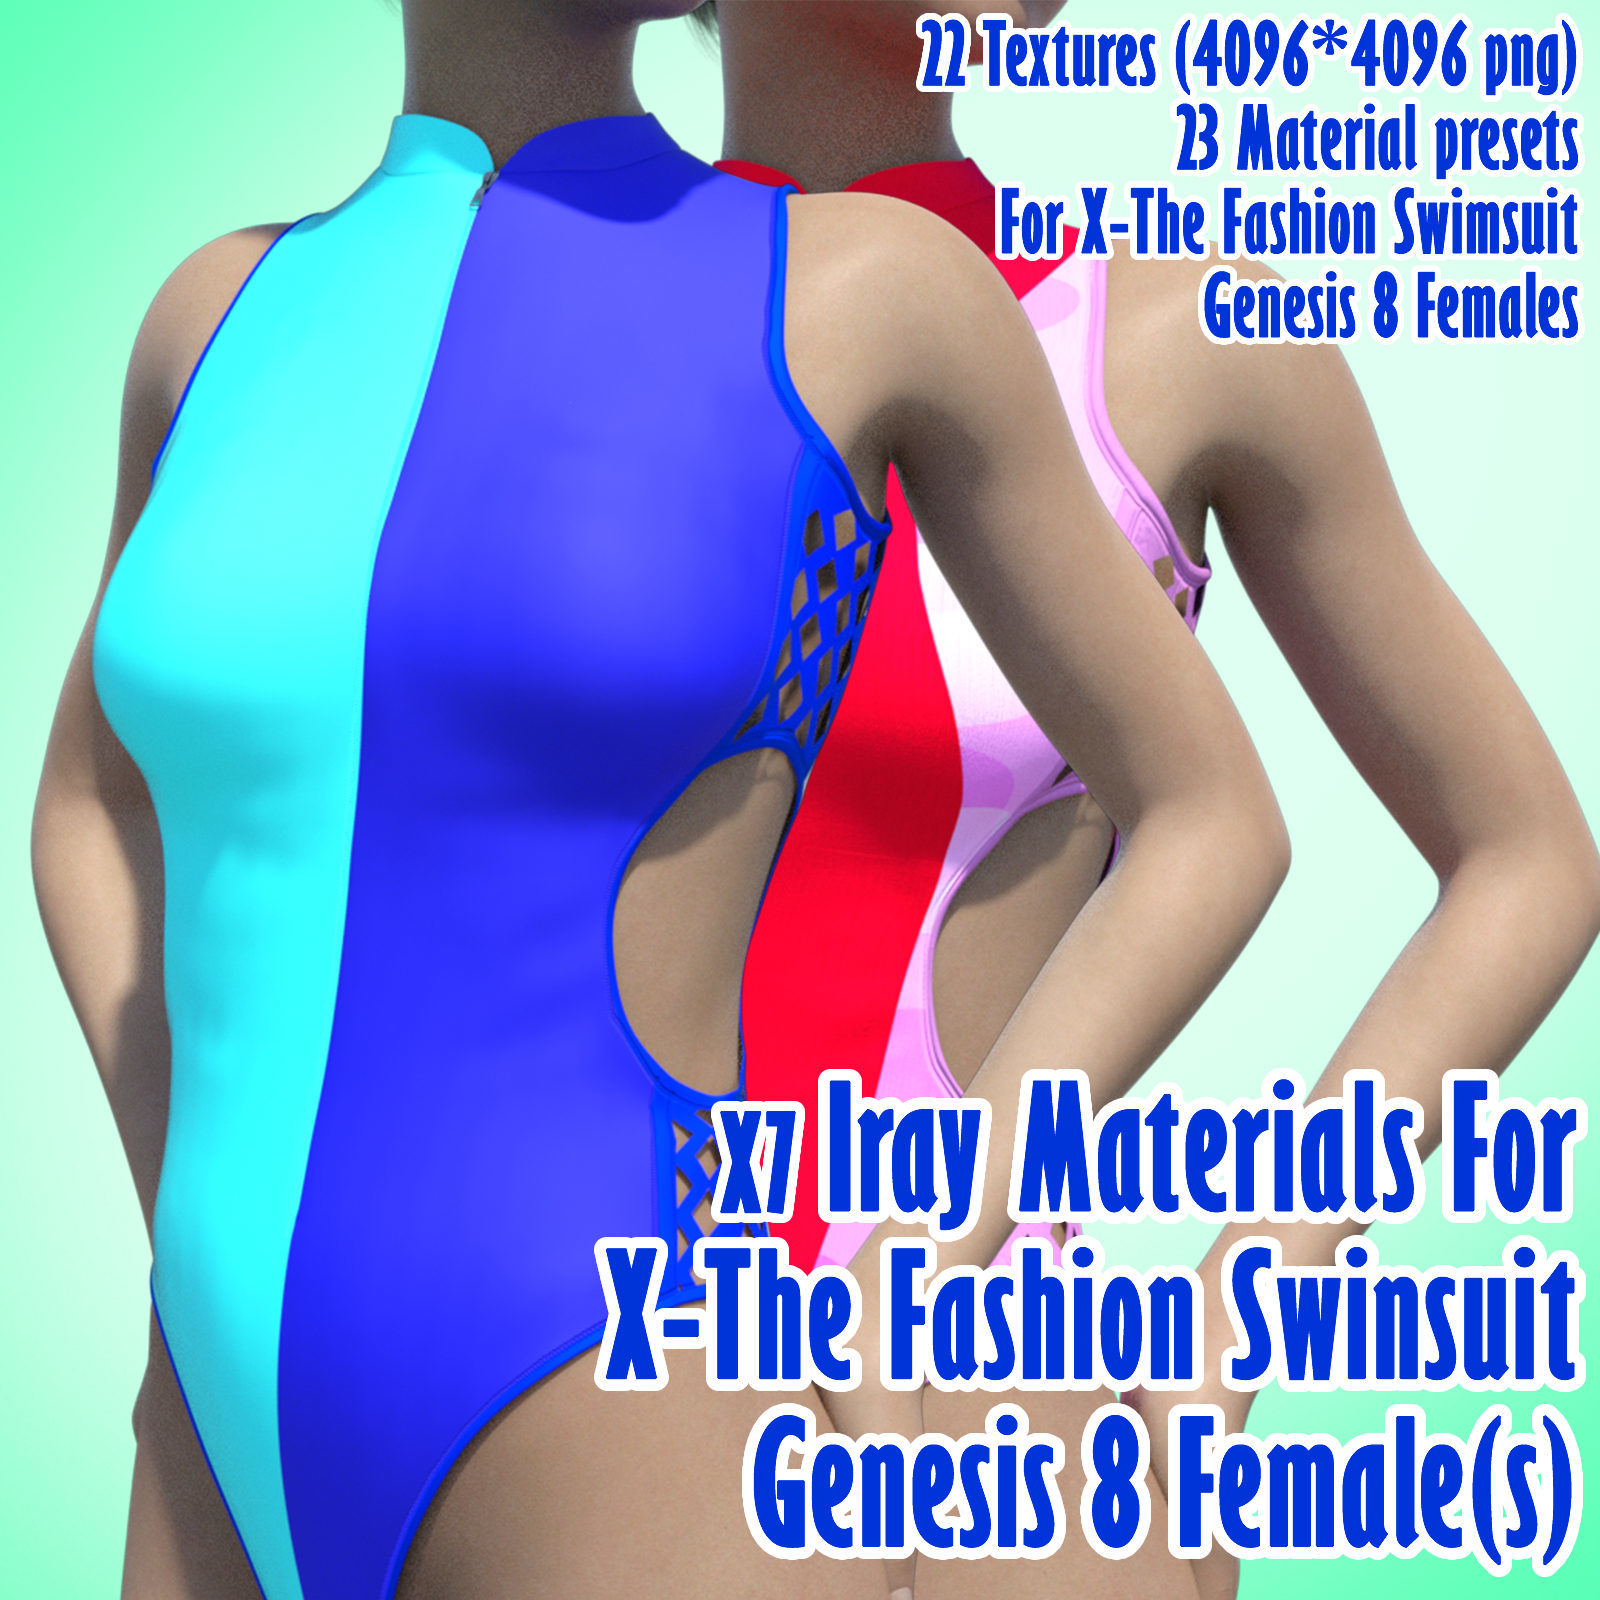 X7 Iray Materials For X-The Fashion Swimsuit Genesis 8 Females